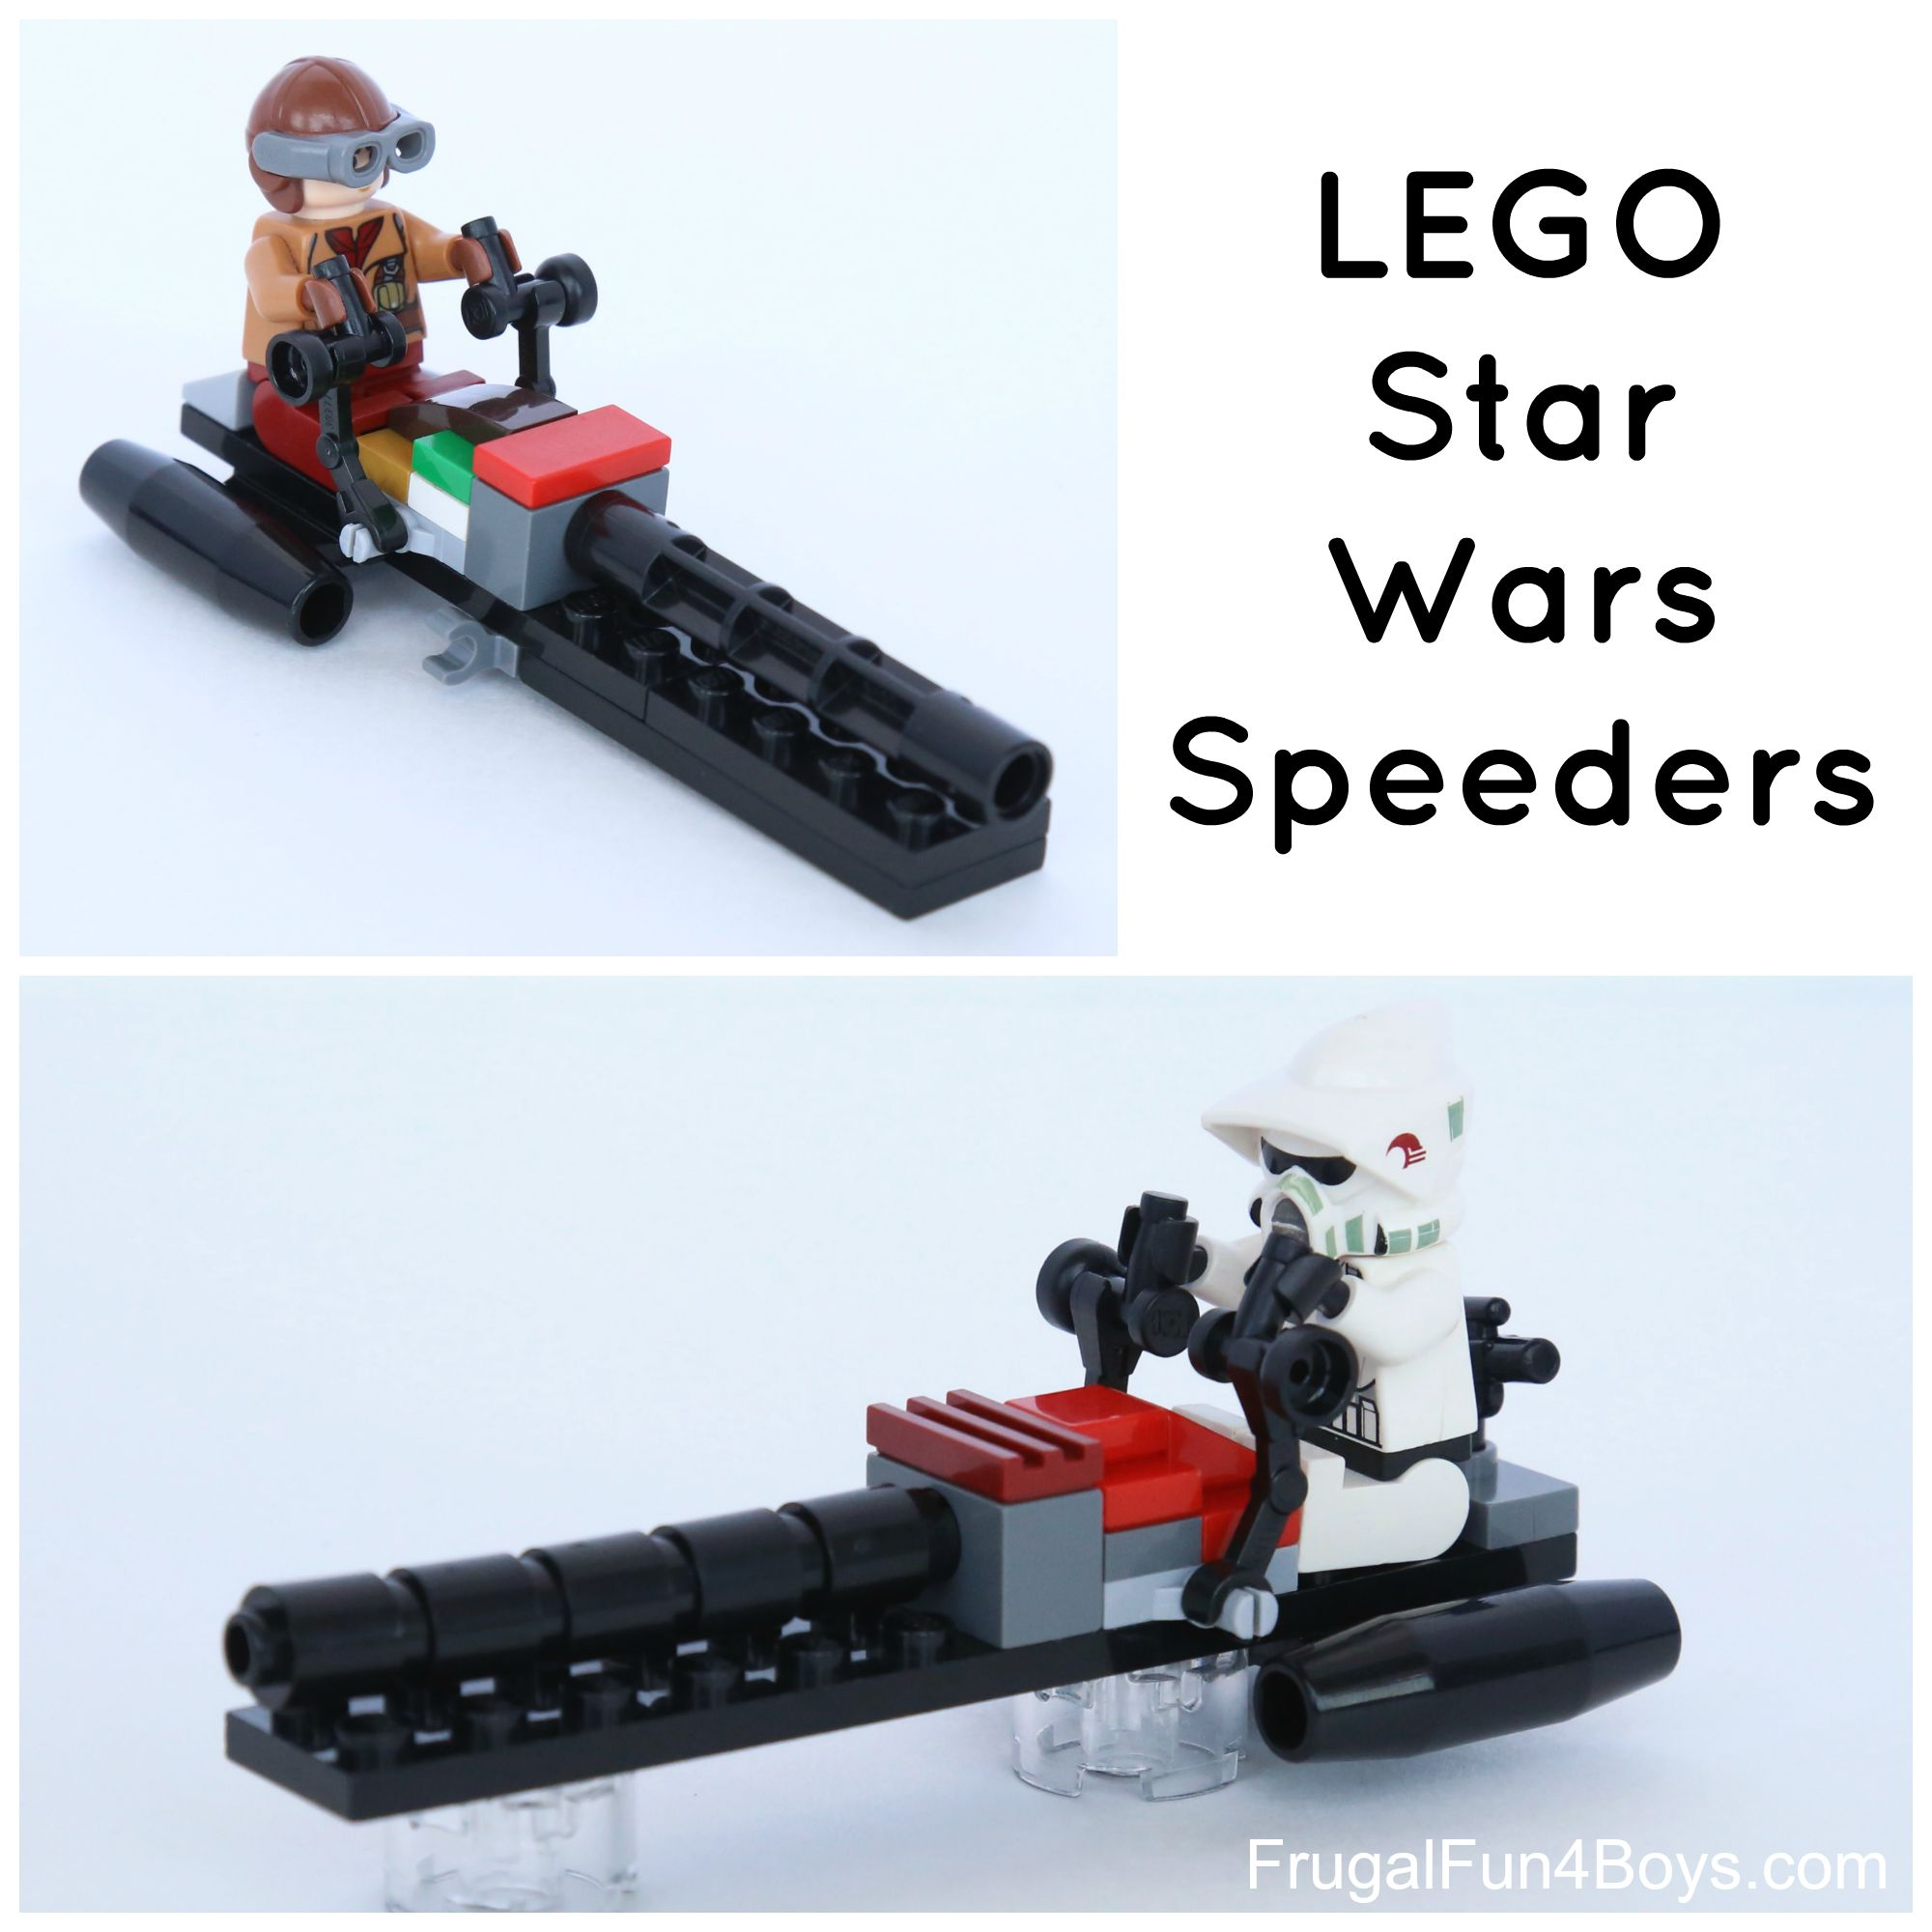 How to Build LEGO Star Wars Speeders